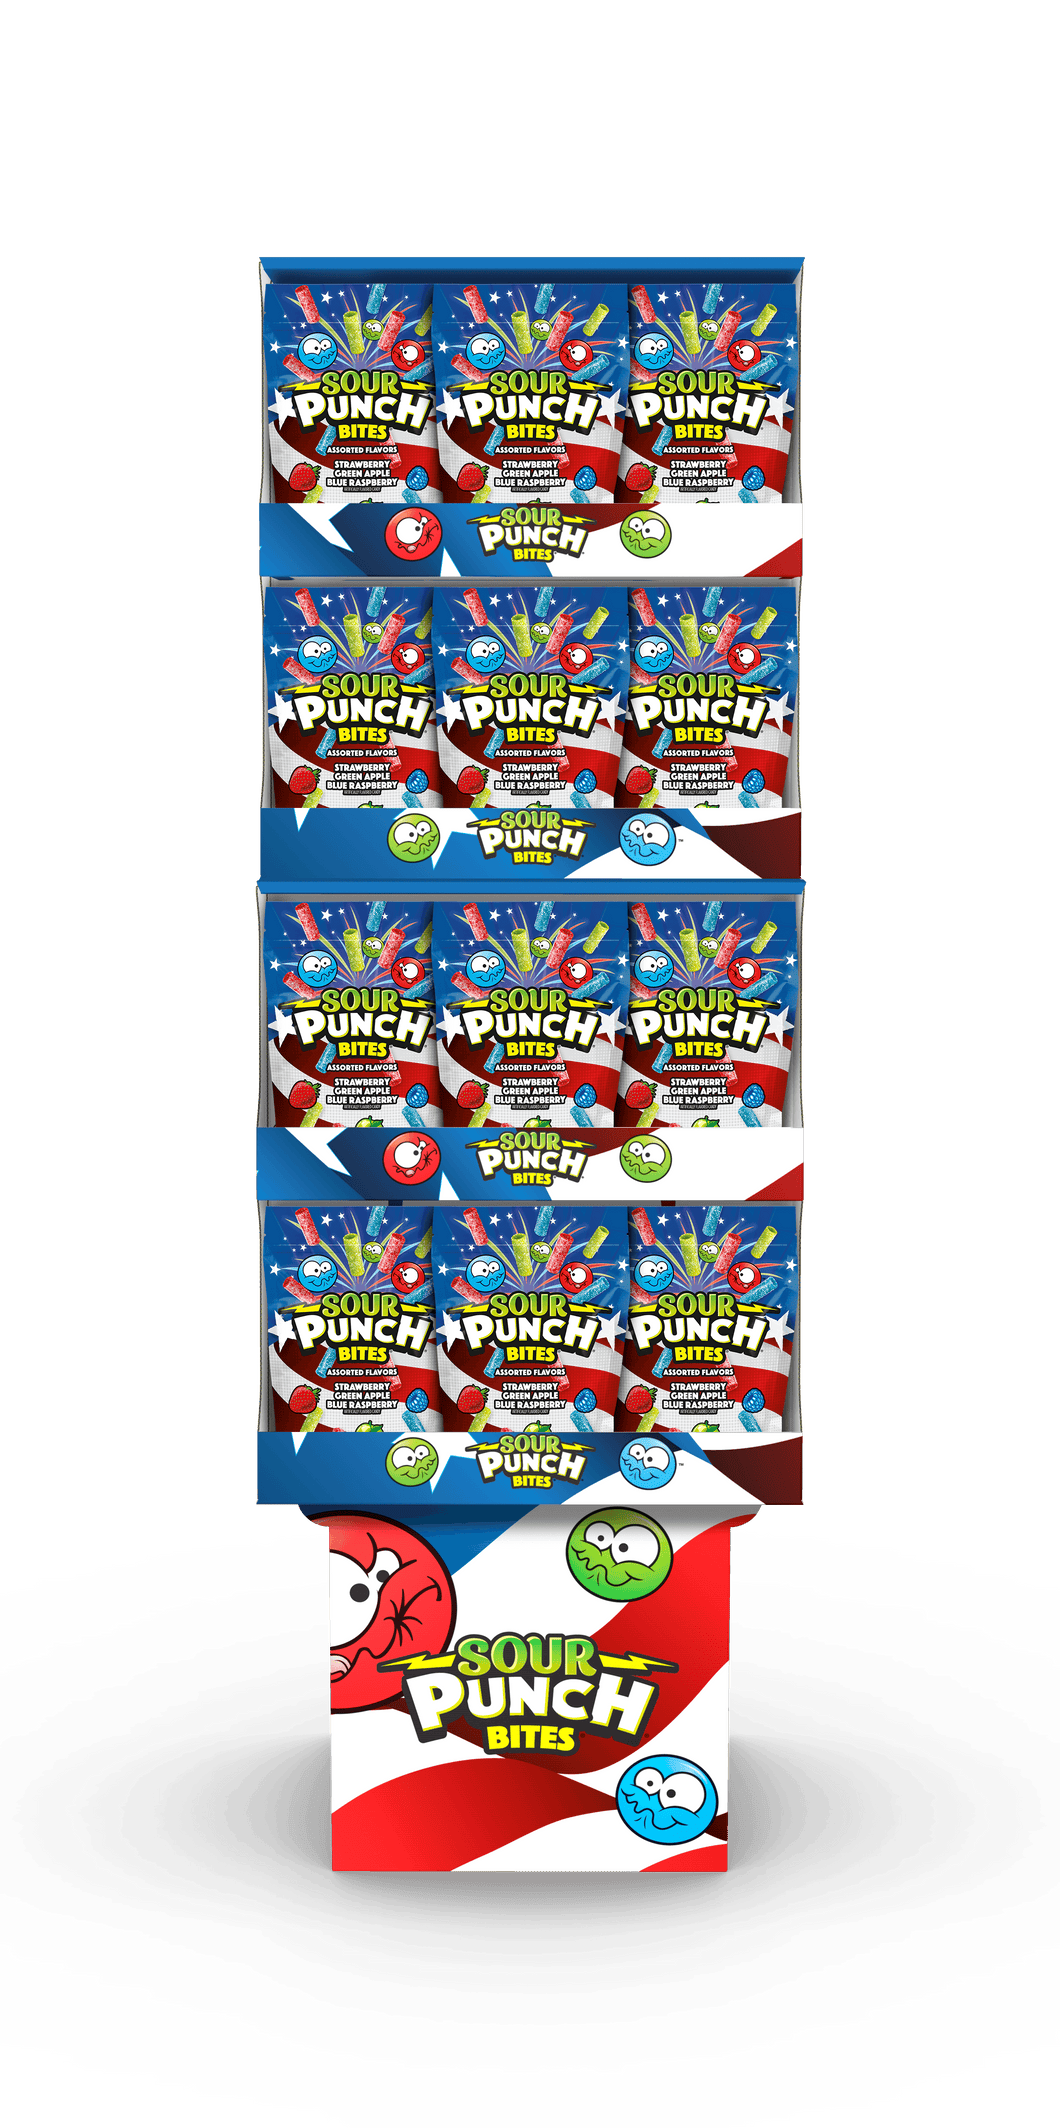 SOUR PUNCH® BITES® 36ct 9oz Assorted Flavors – AMERICANA THEMED FLOOR DISPLAY